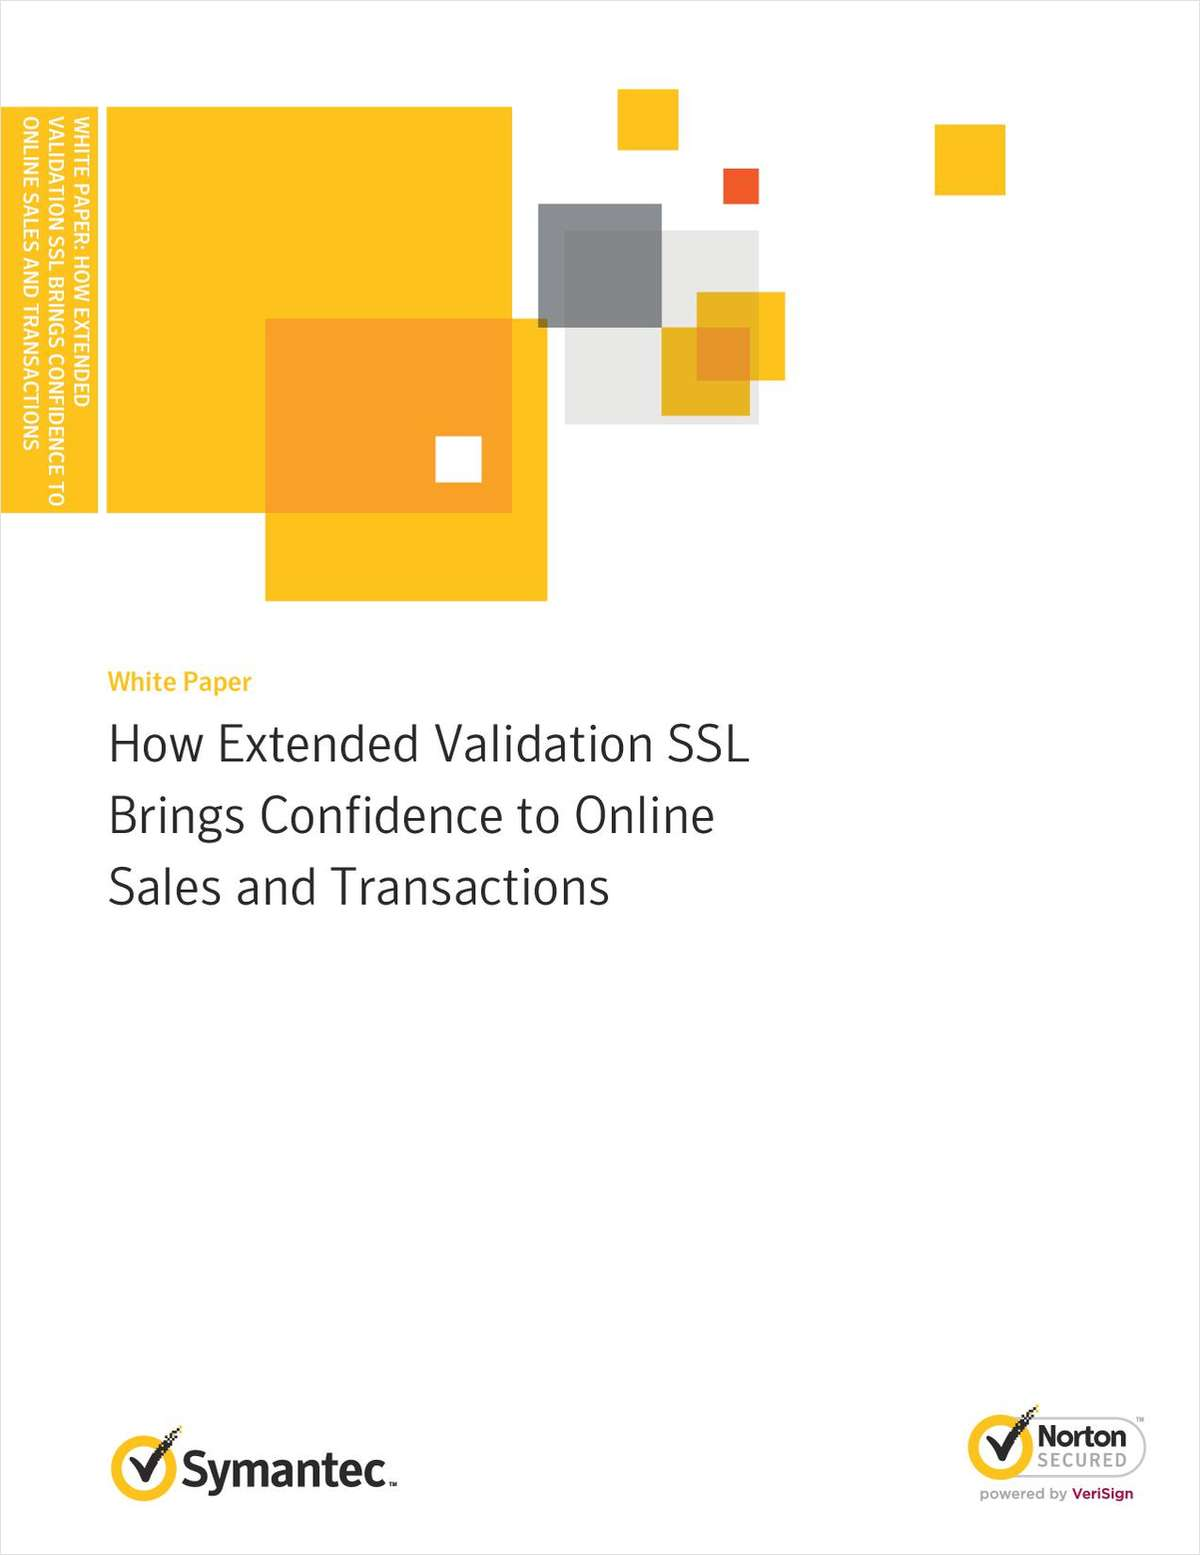 How Extended Validation SSL Brings Confidence to Online Sales and Transactions